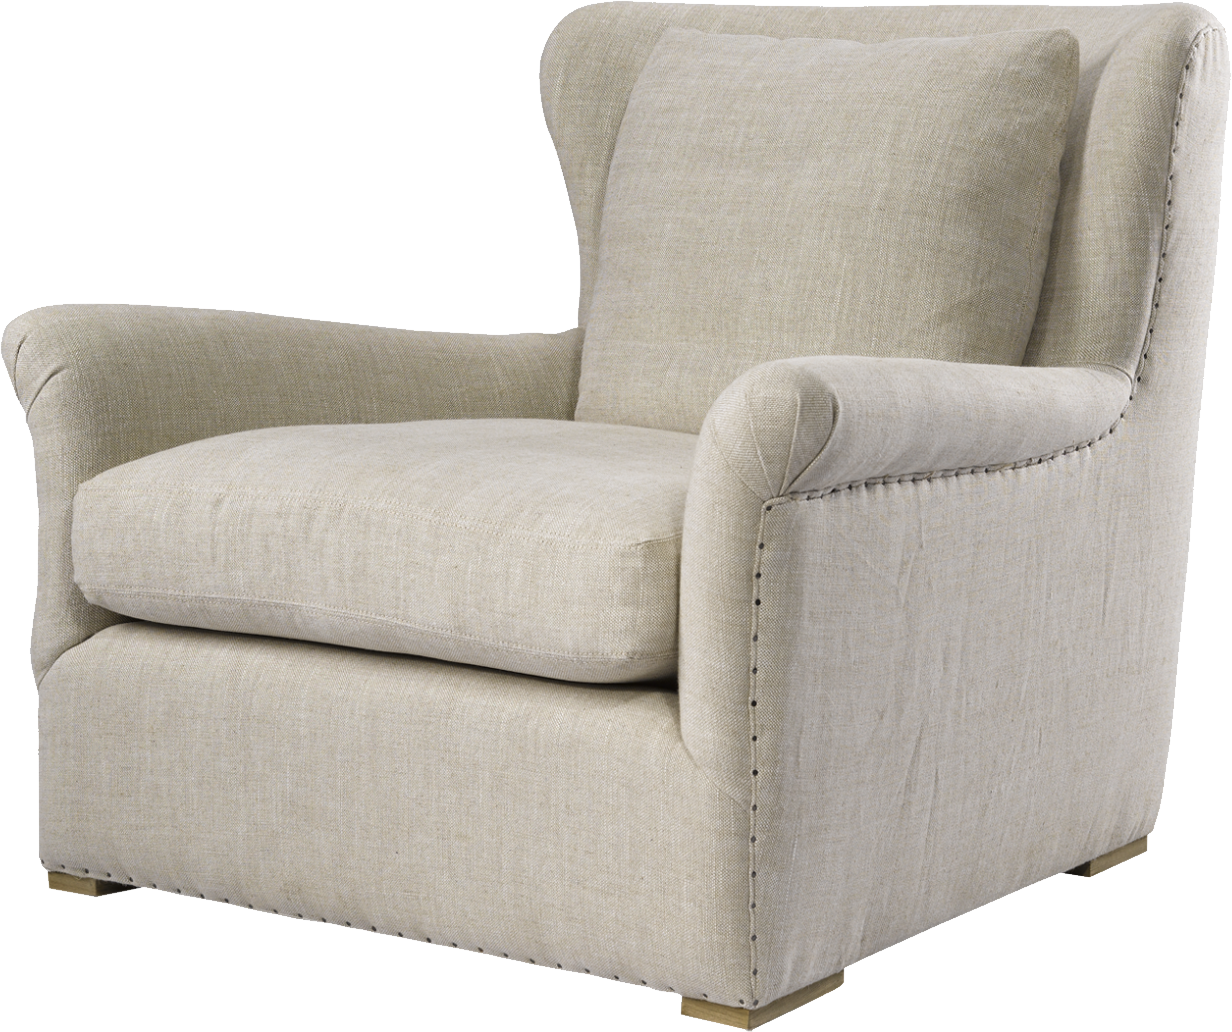 modern furniture chairs png armchair png images free downlofd armchairs png 491